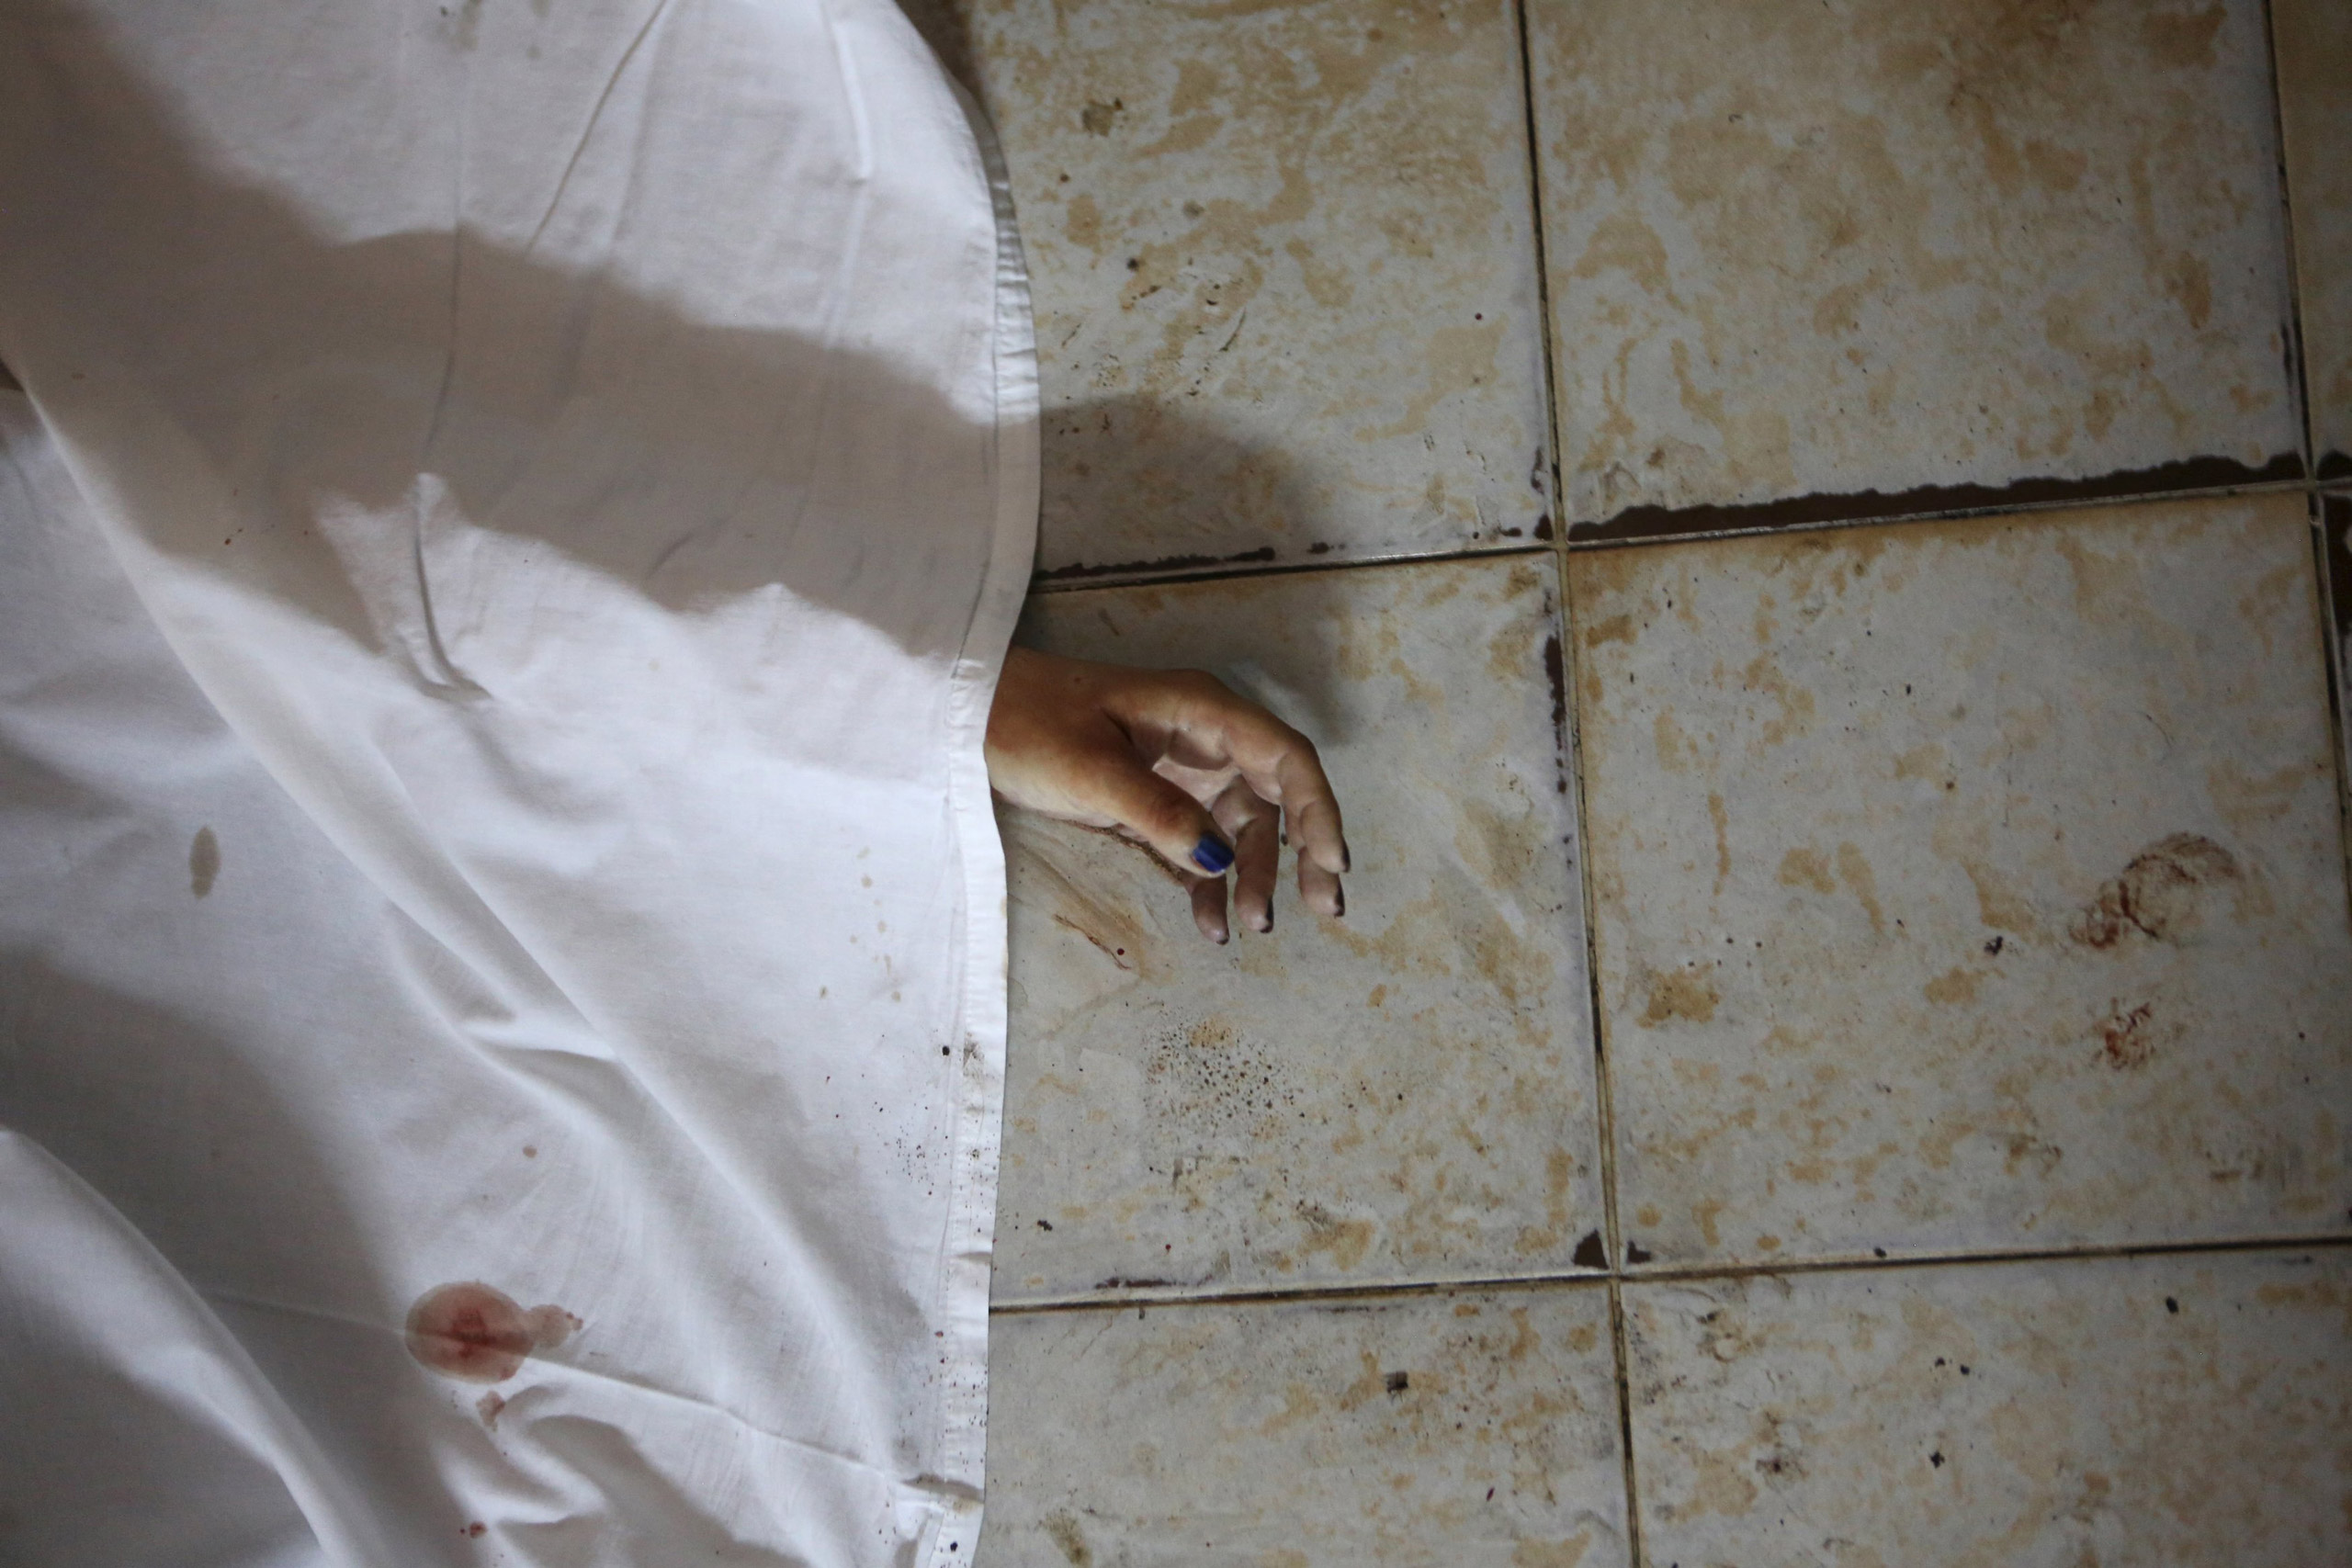 The hand of a person killed is seen after an attack in Grand Bassam, Ivory Coast, on March 13, 2016.